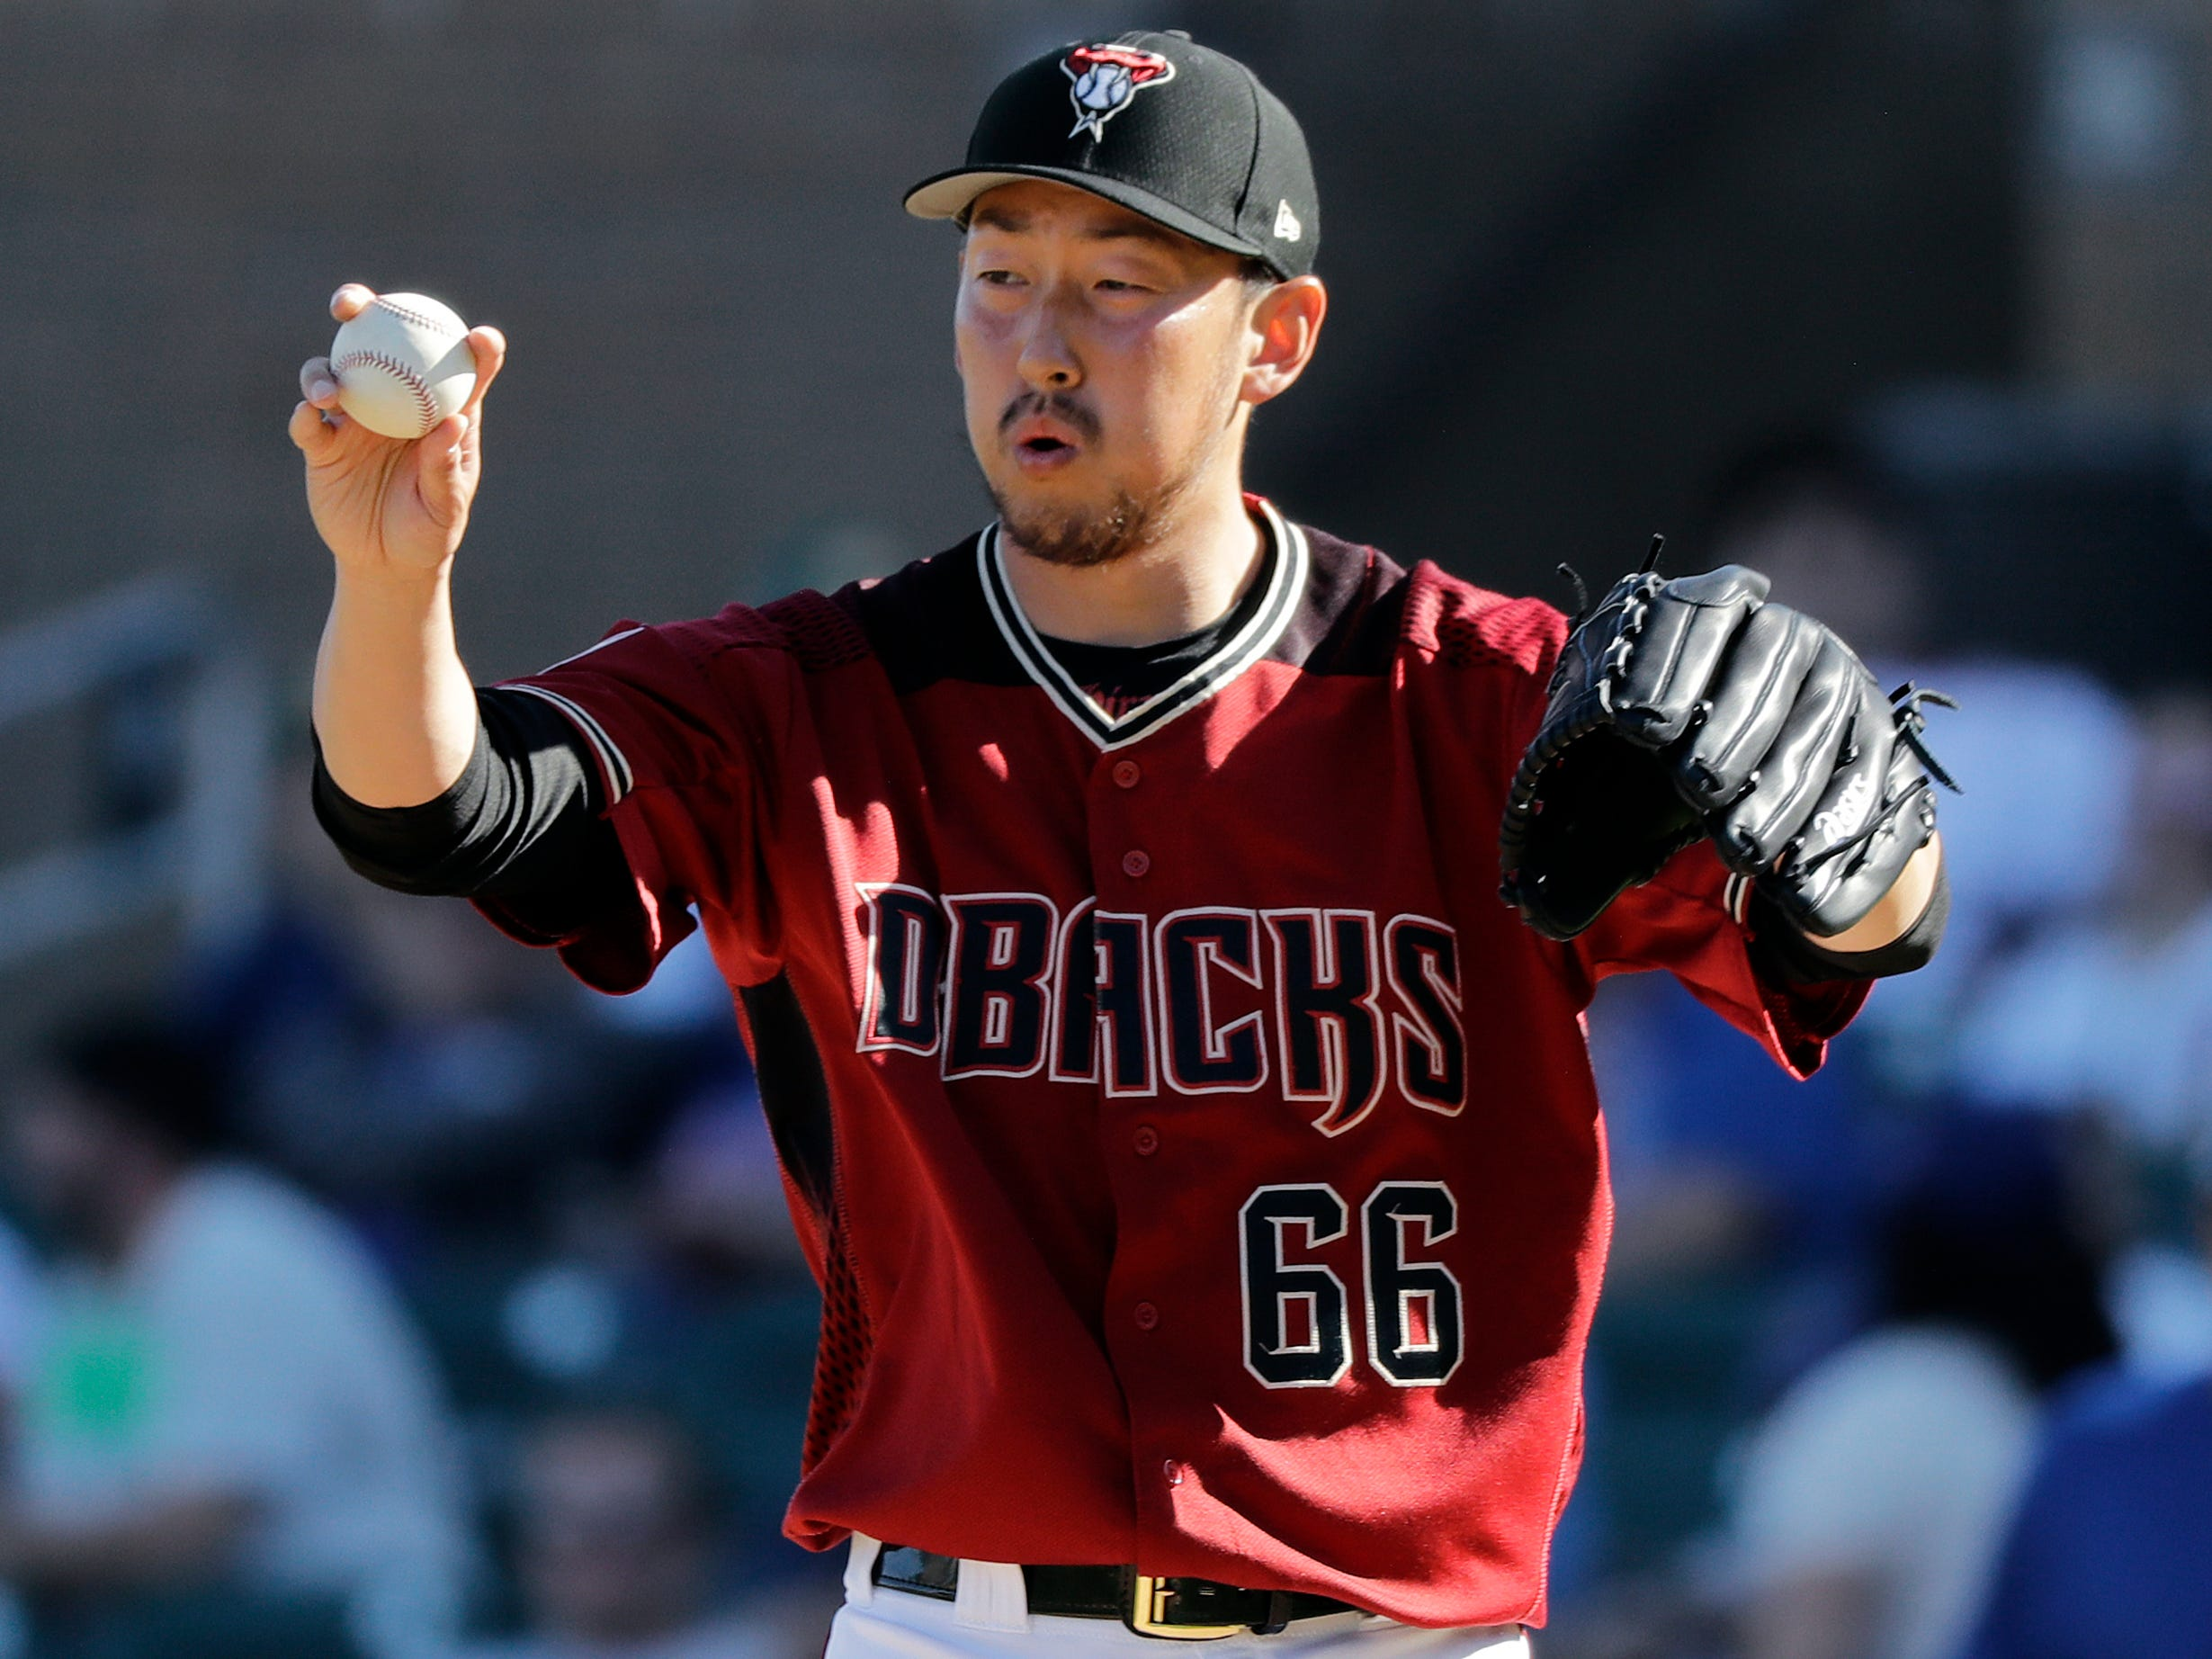 Arizona Diamondbacks' Yoshihisa Hirano stretches between pitches against the Chicago Cubs in the eighth inning of a spring training baseball game Saturday, March 16, 2019, in Scottsdale, Ariz.